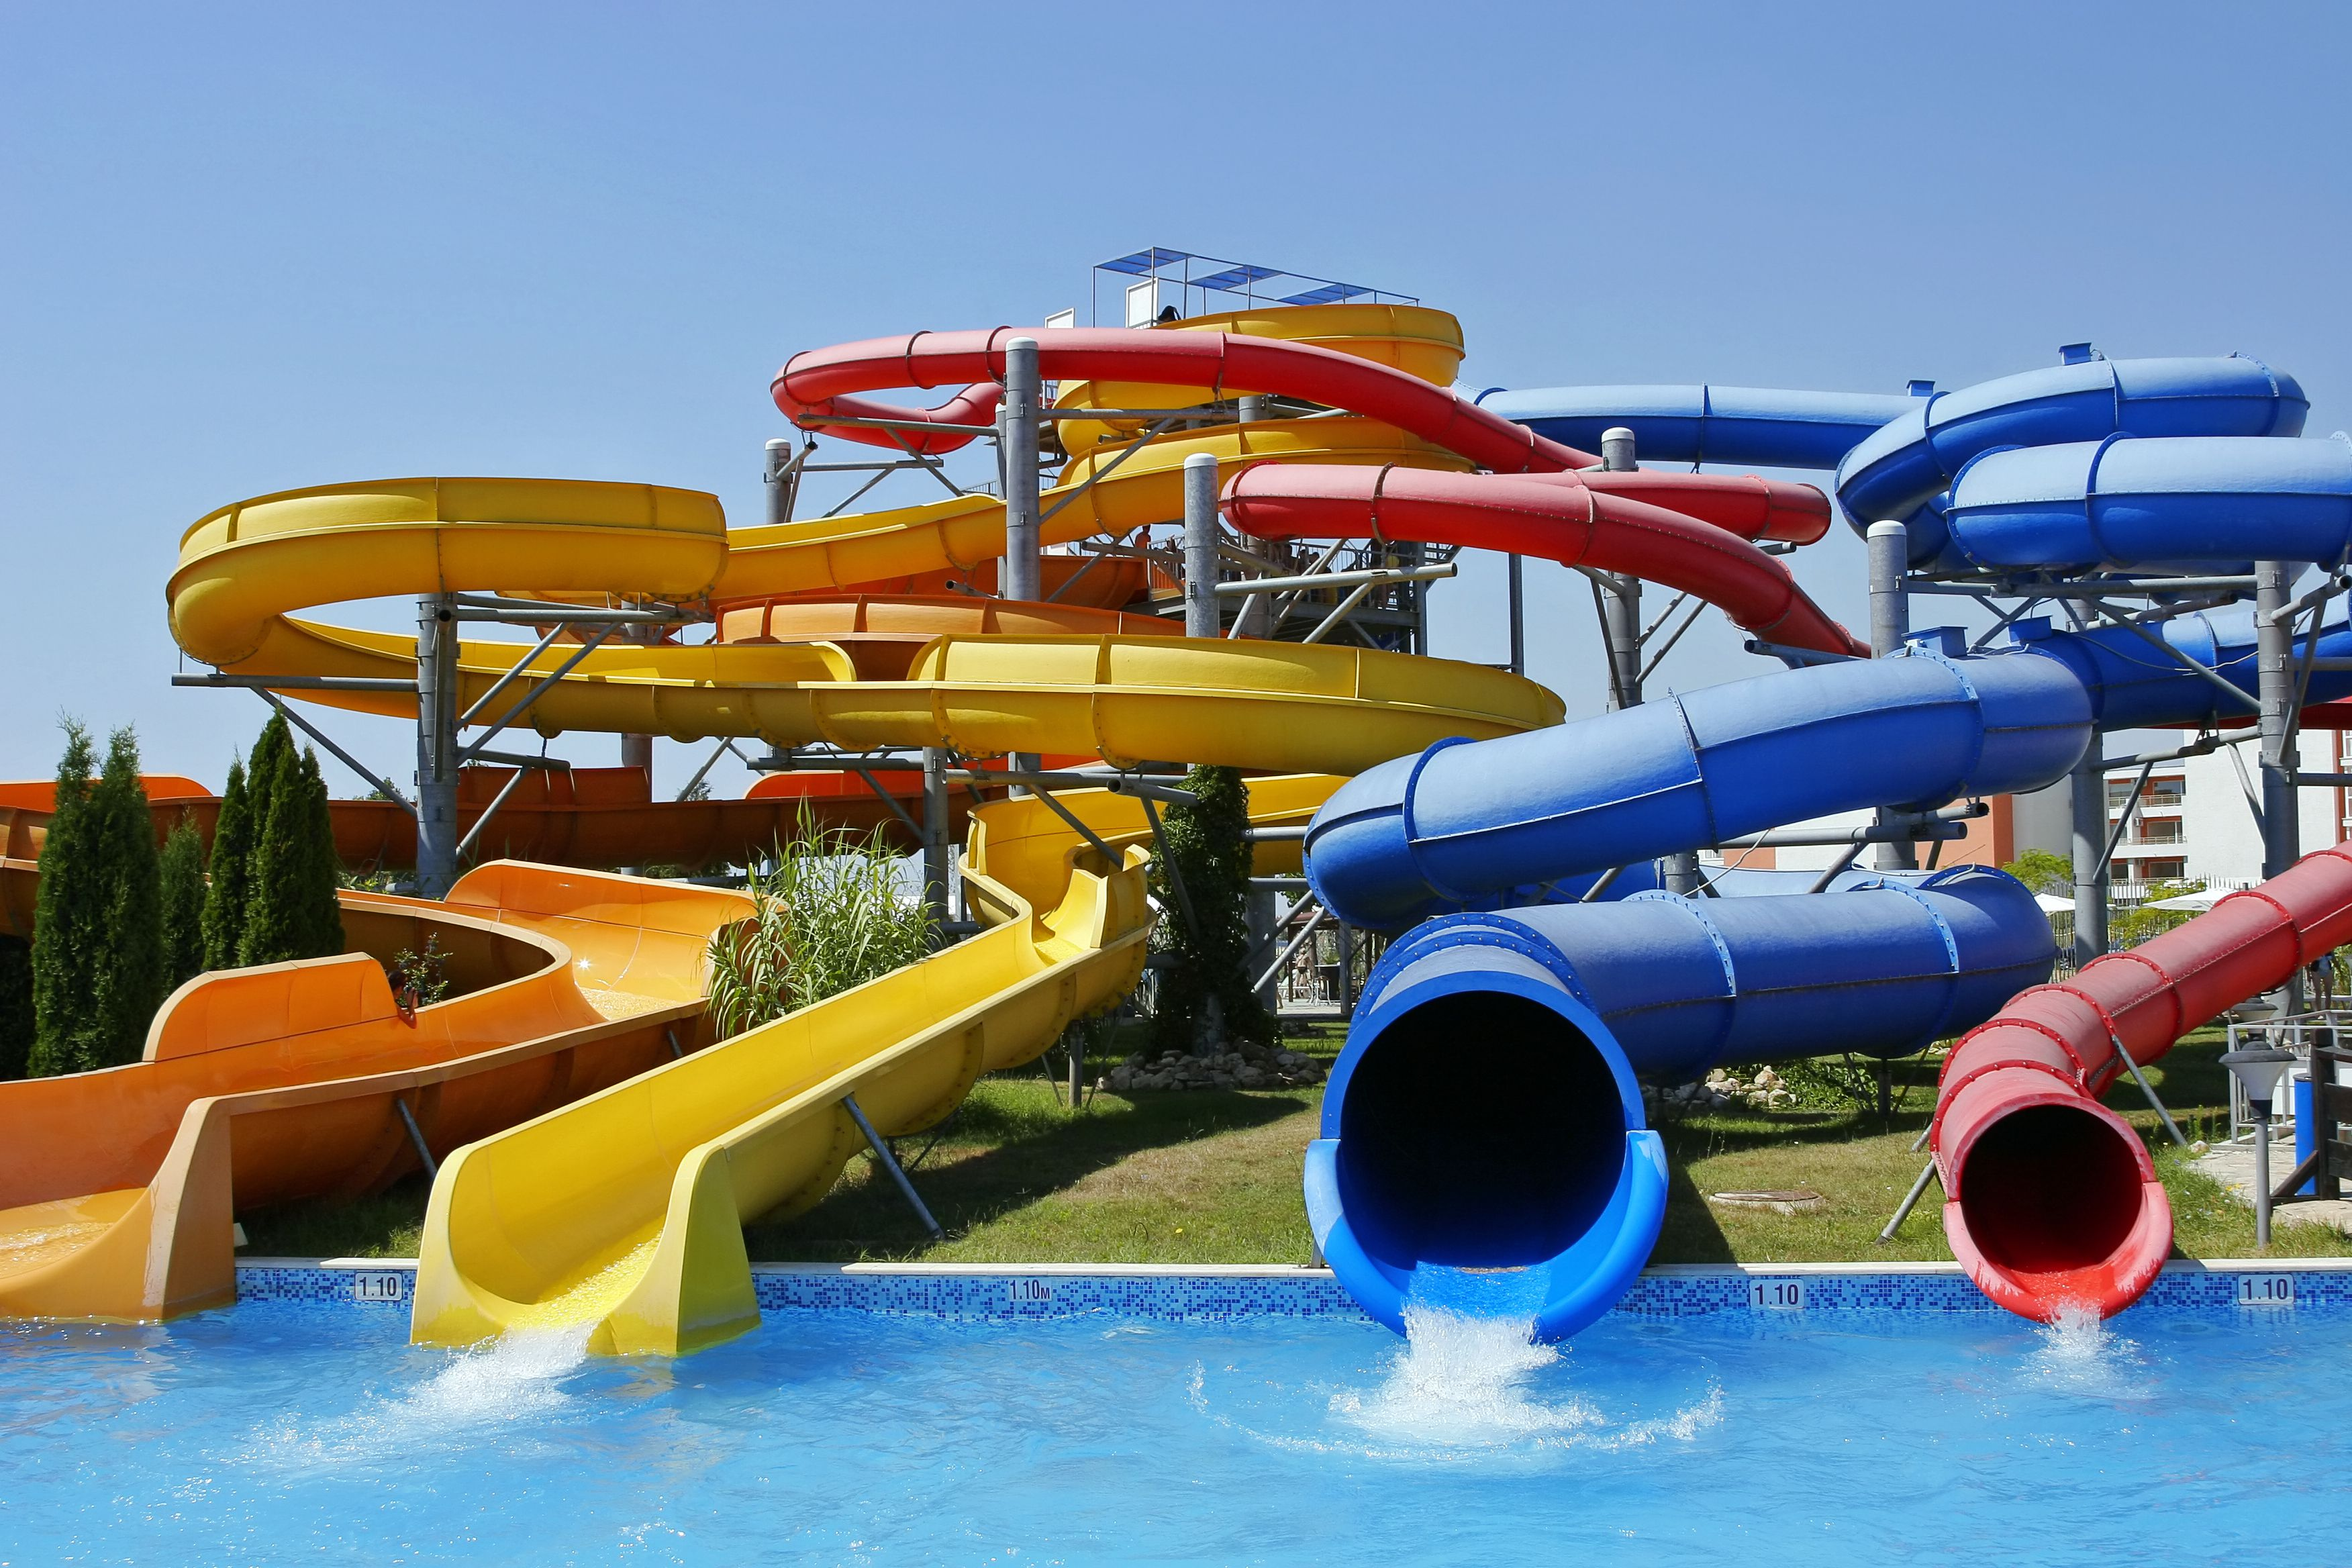 View of four different water park tubes on a clear day